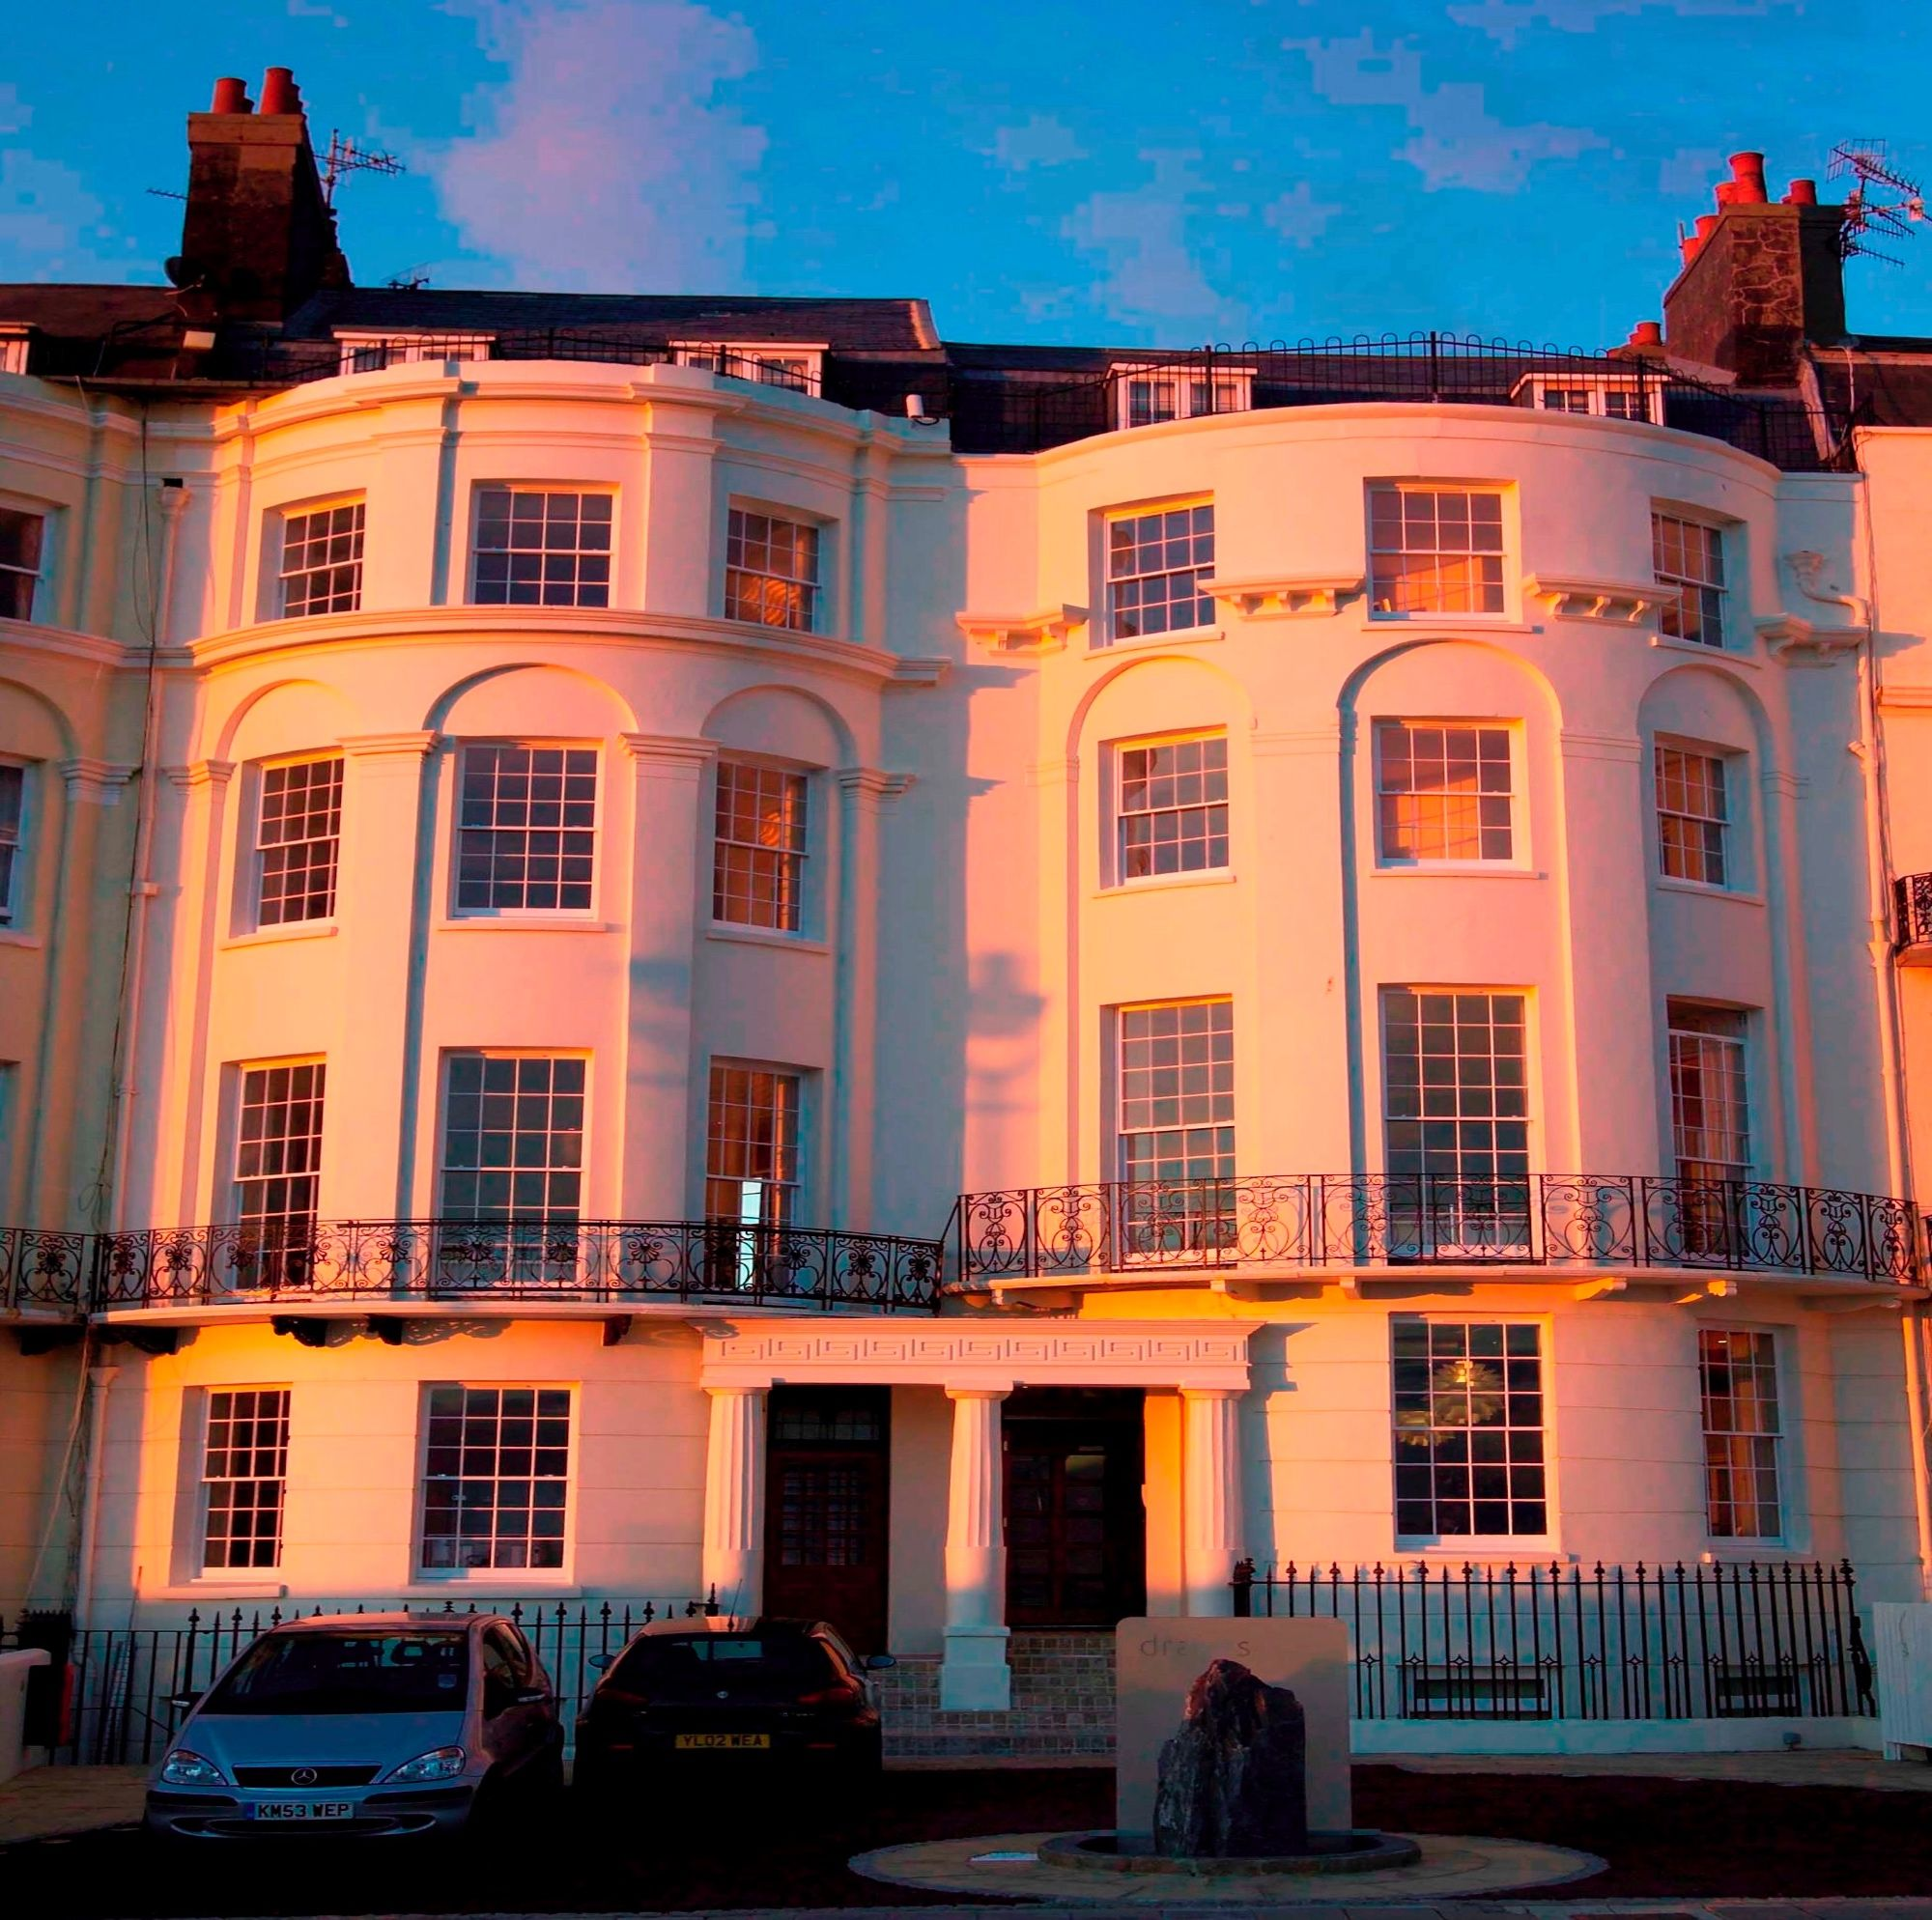 Drakes Boutique Hotel In Brighton, East Sussex